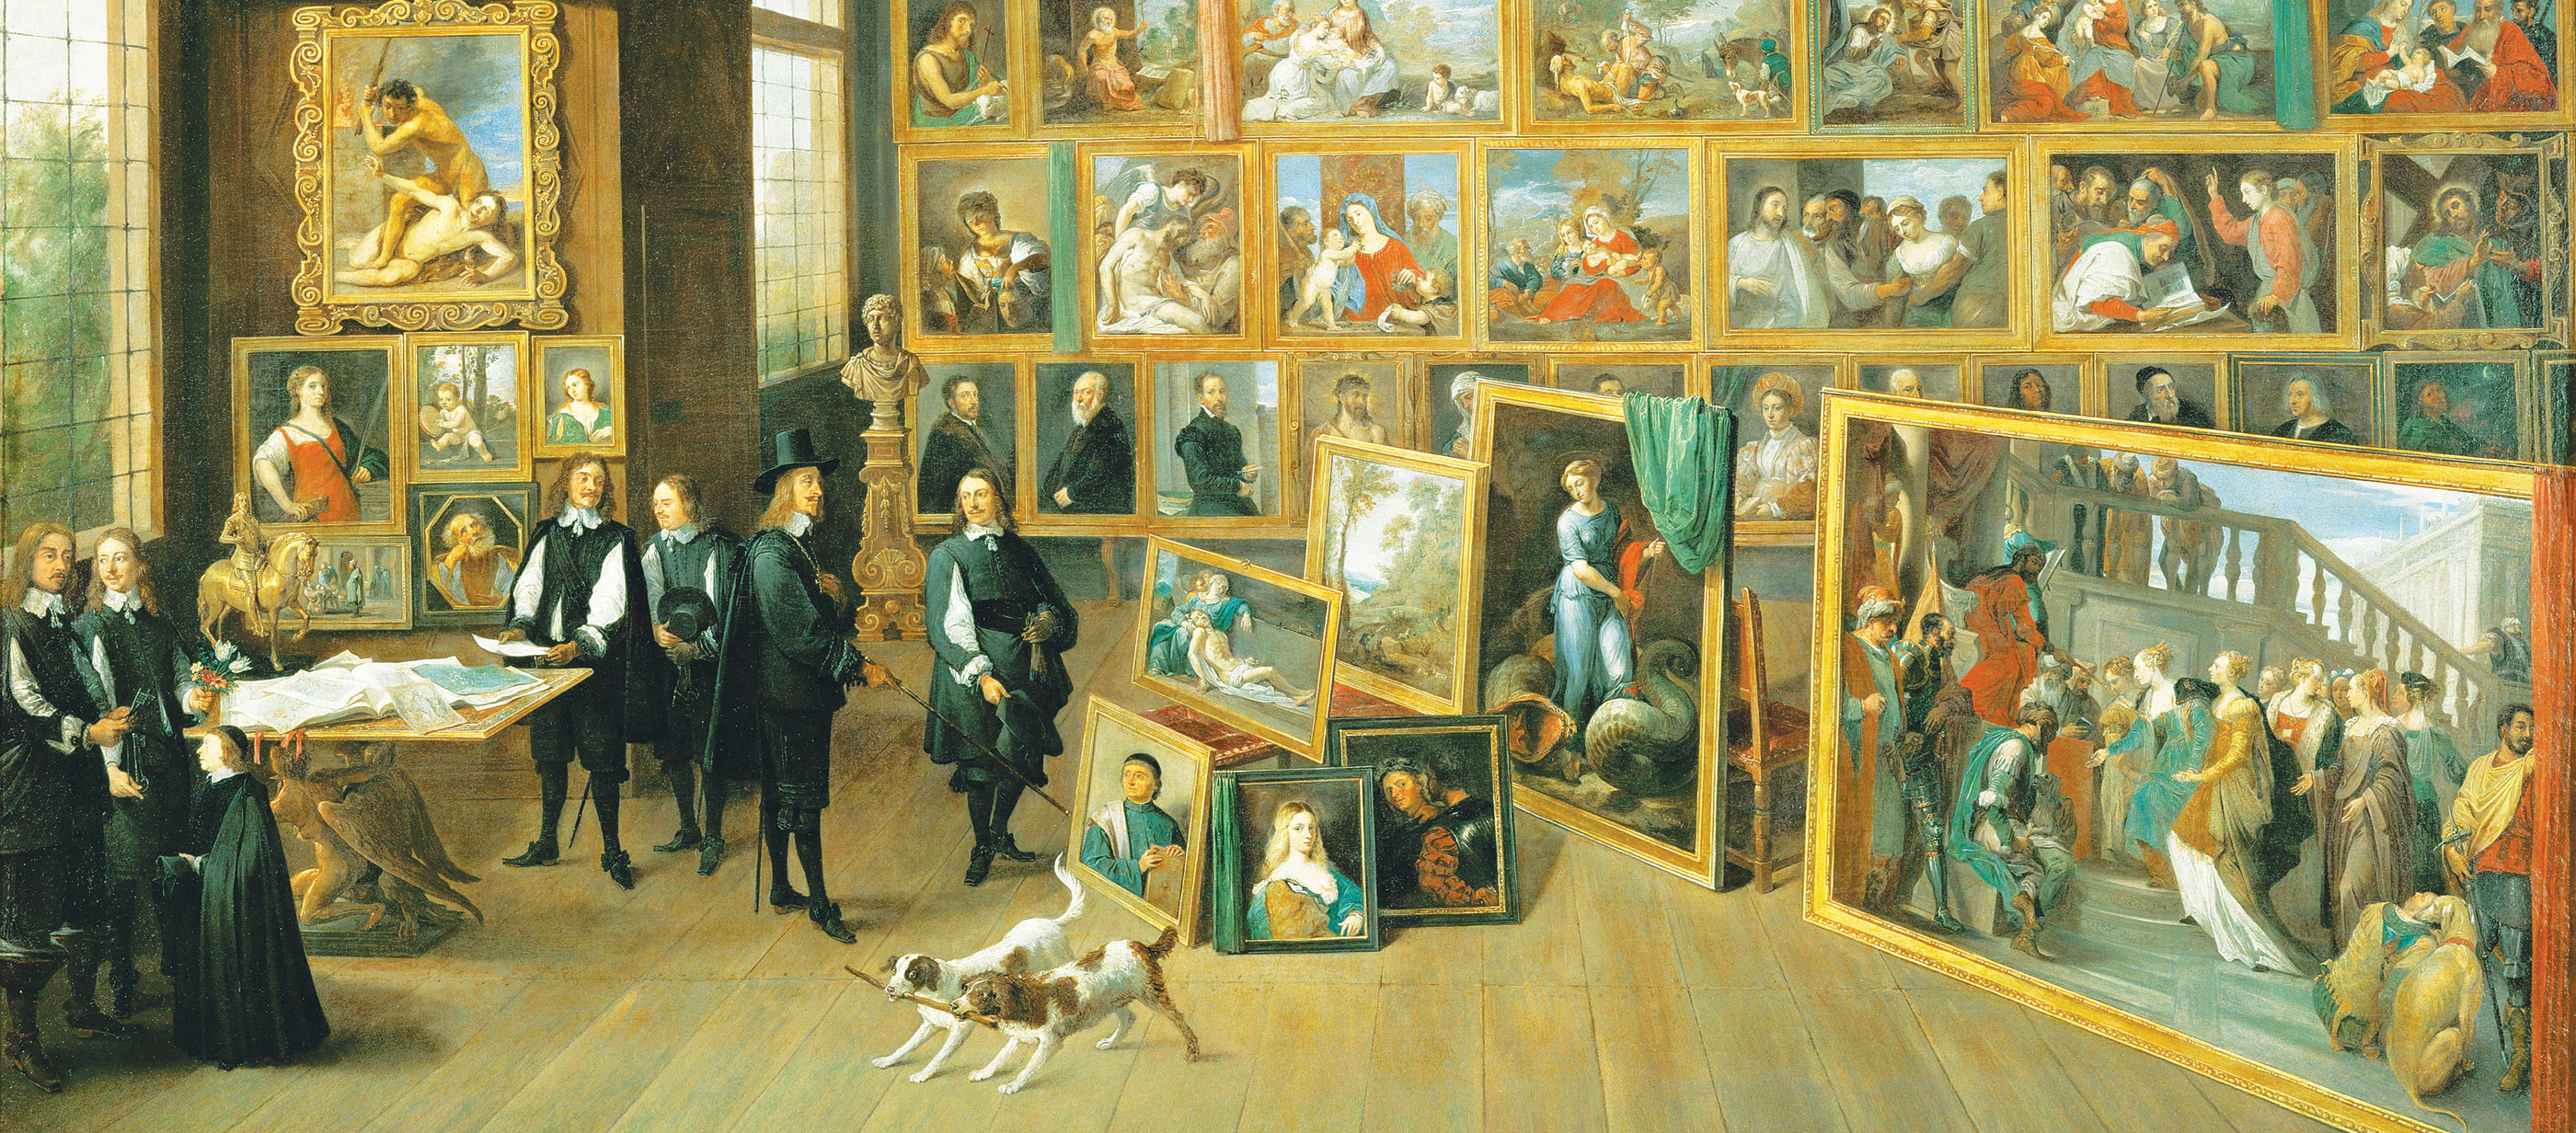 Archduke Leopold Wilhelm in his Gallery in Brussels, by David Teniers the Younger, c. 1651. Kunsthistorisches Museum, Vienna, Austria.